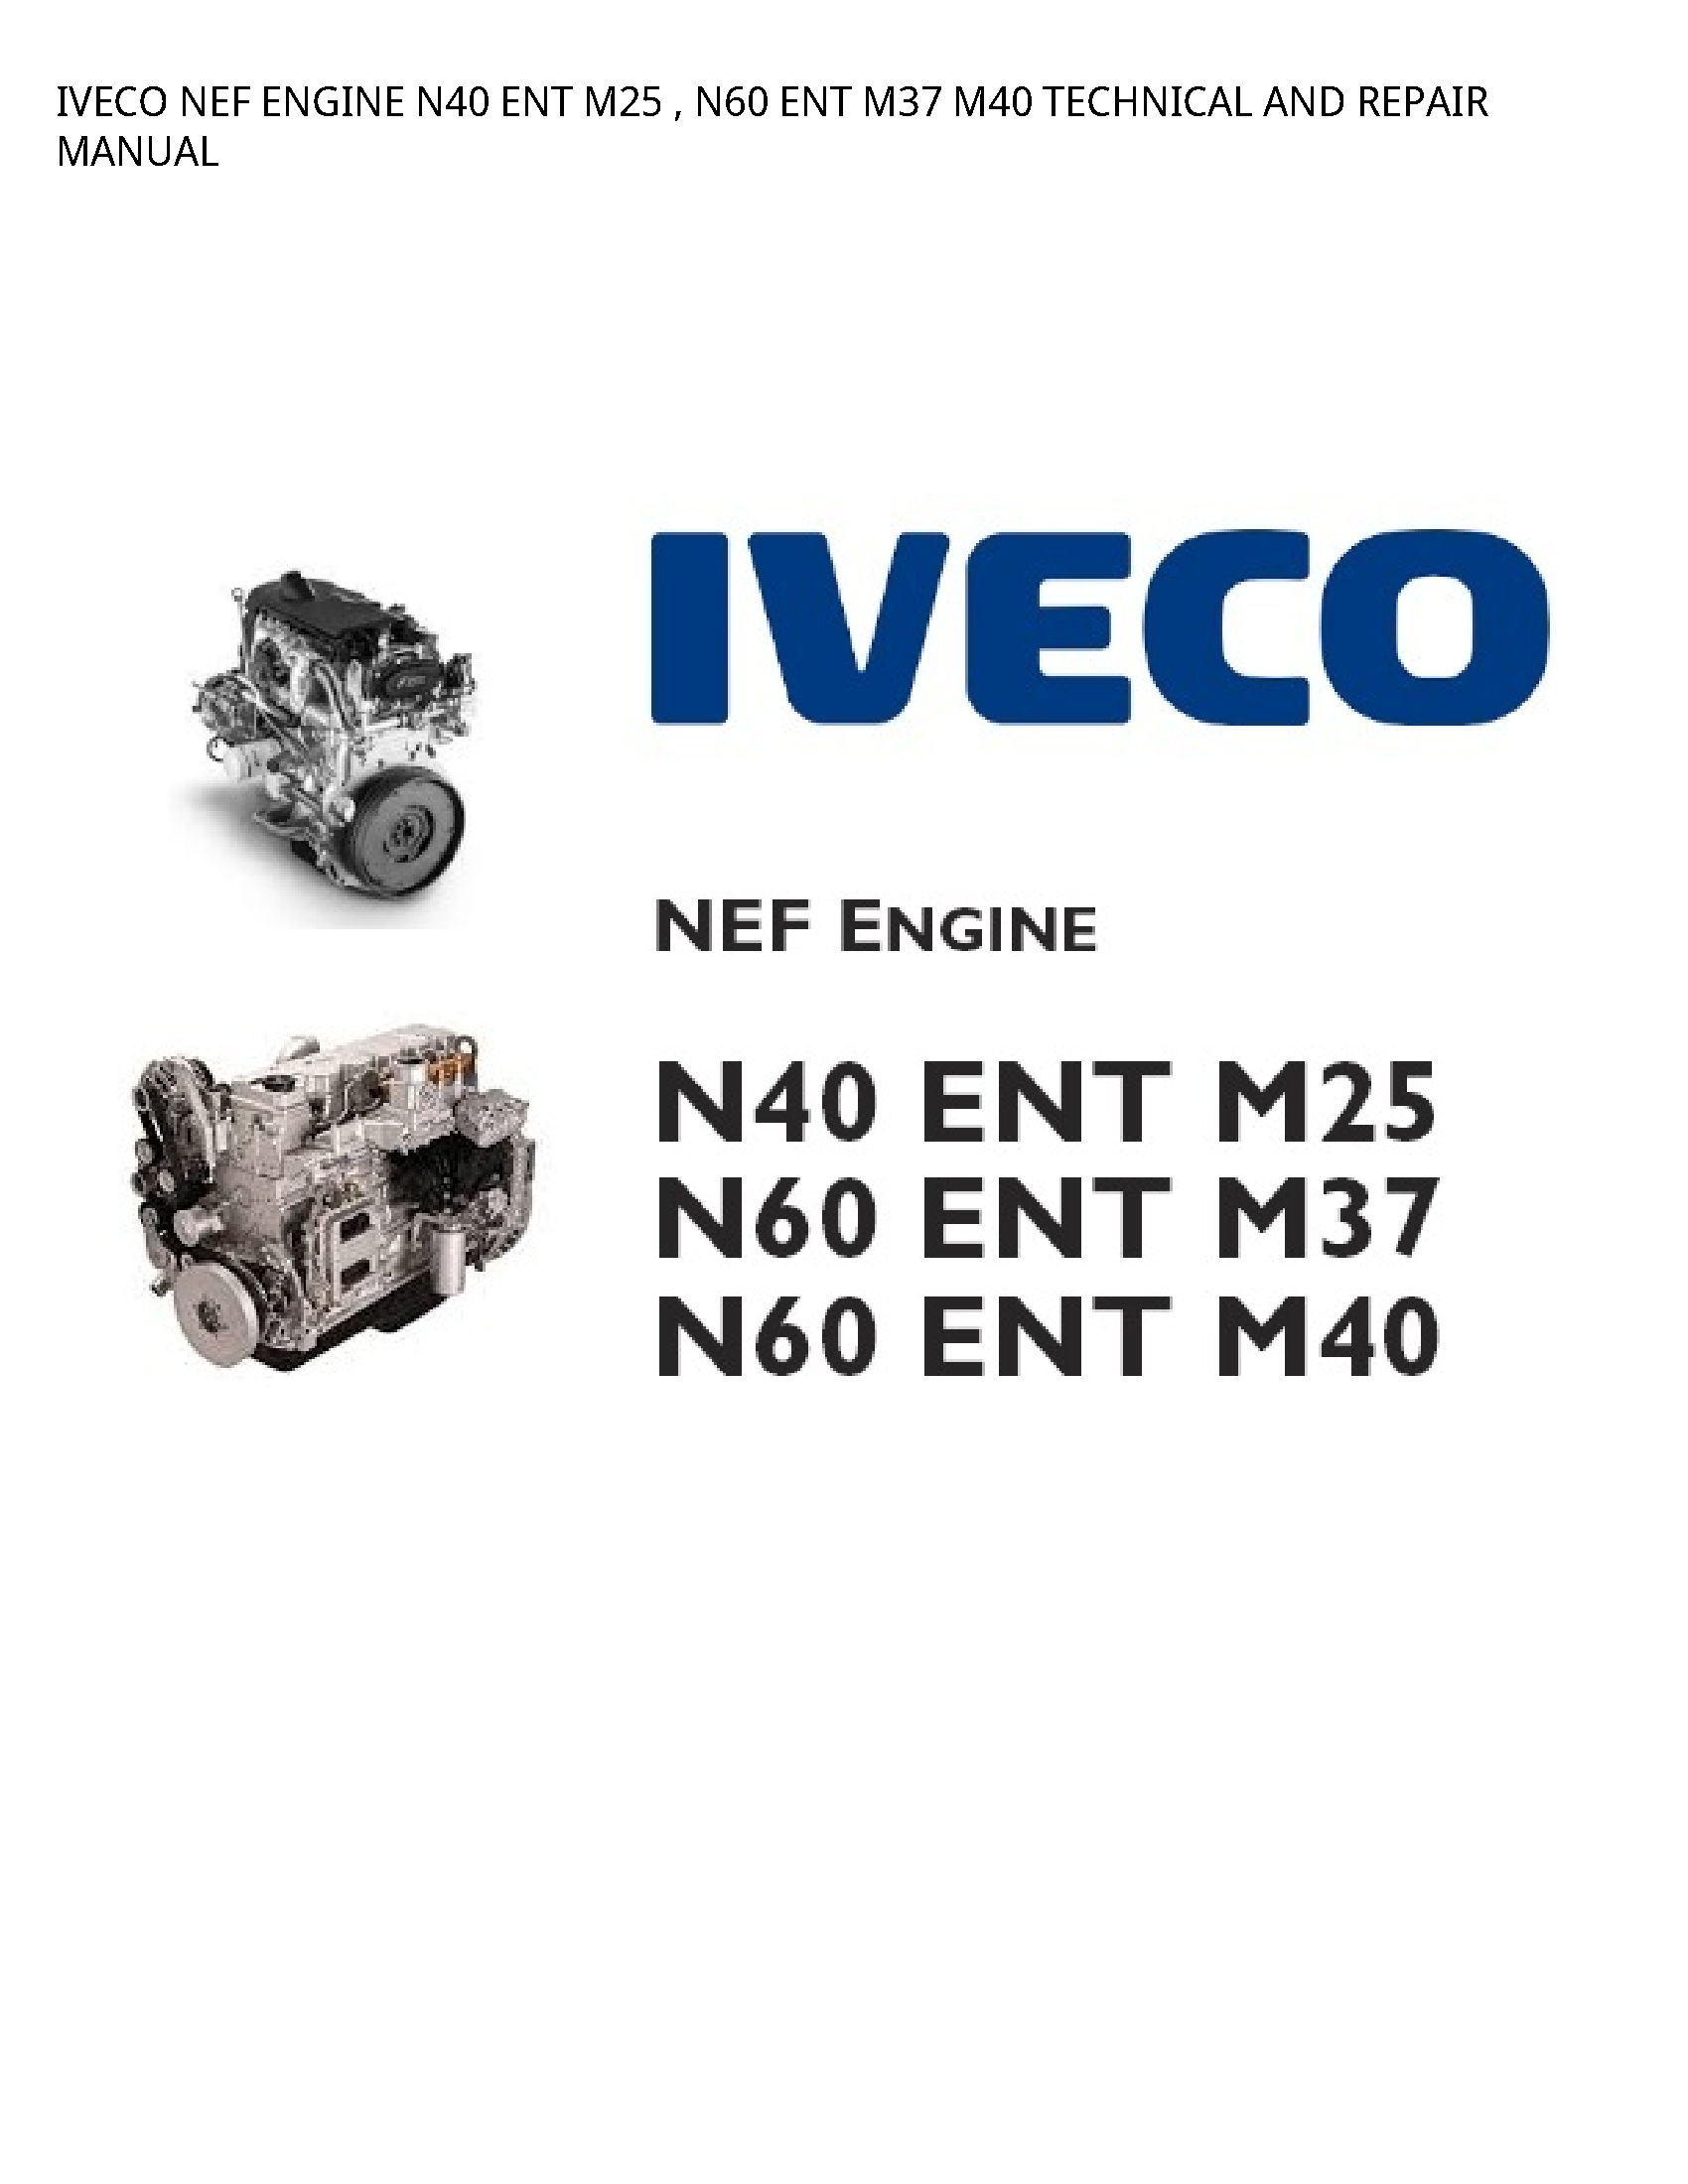 Iveco N40 NEF ENGINE ENT ENT TECHNICAL AND REPAIR manual